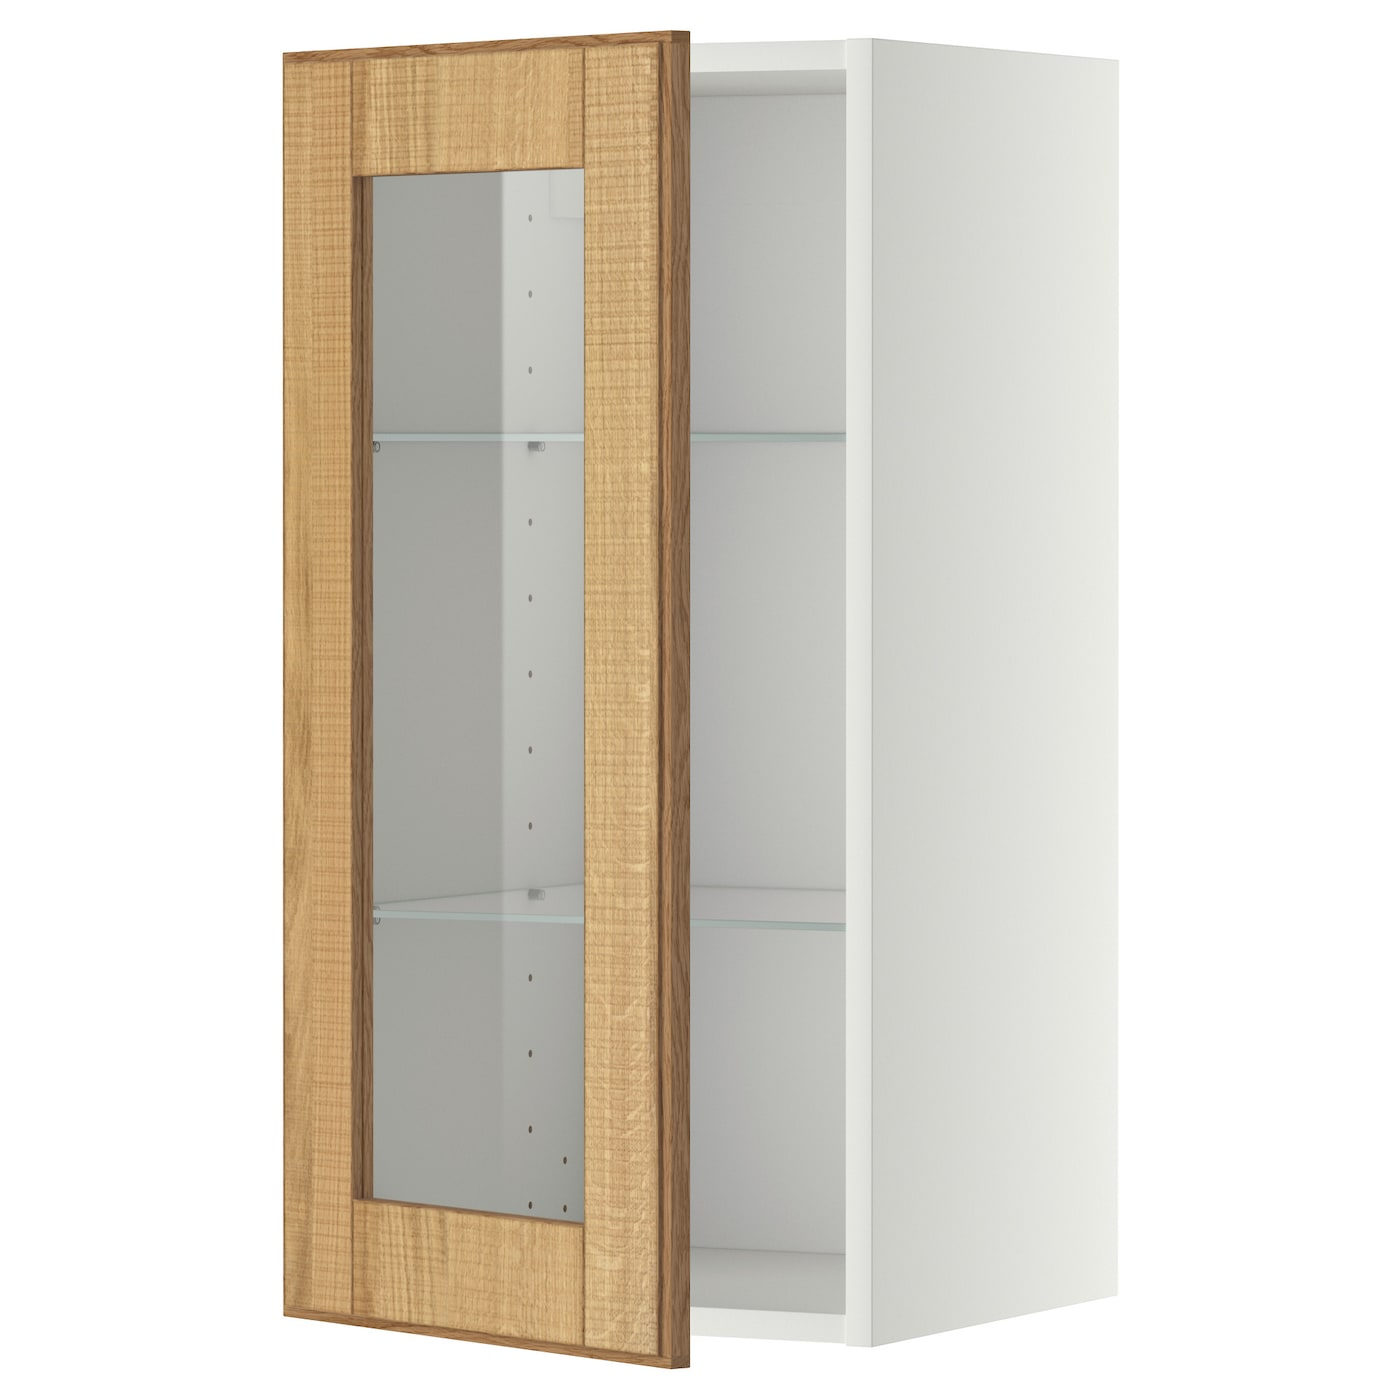 Metod wall cabinet w shelves glass door white hyttan oak for Ikea glass door wall cabinet